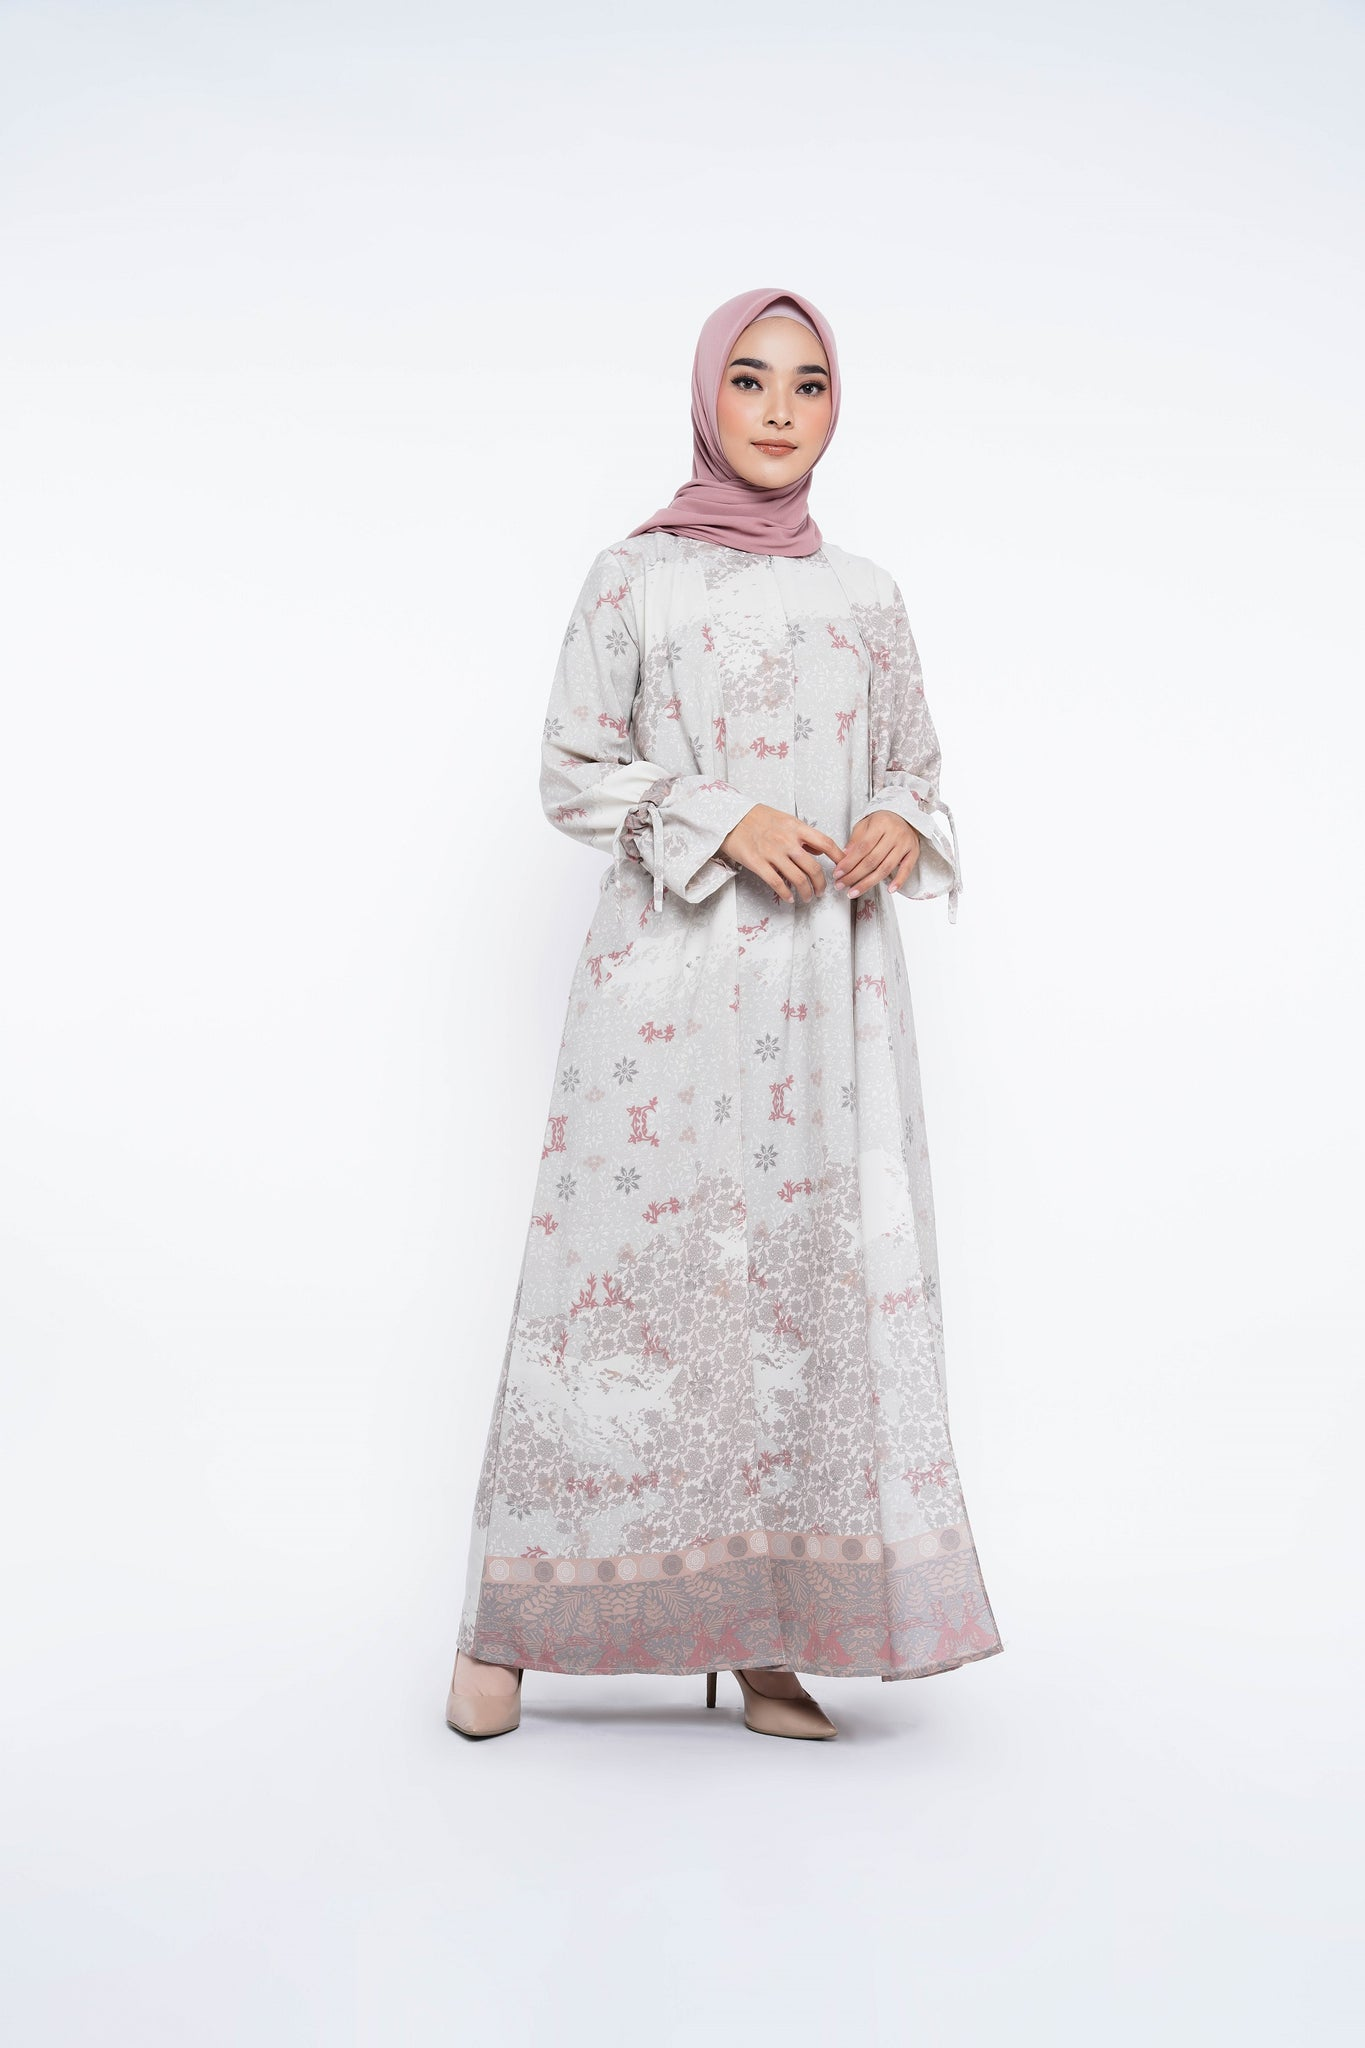 BIA - Polly Tofu Dress Islamic Journey In Spanyol